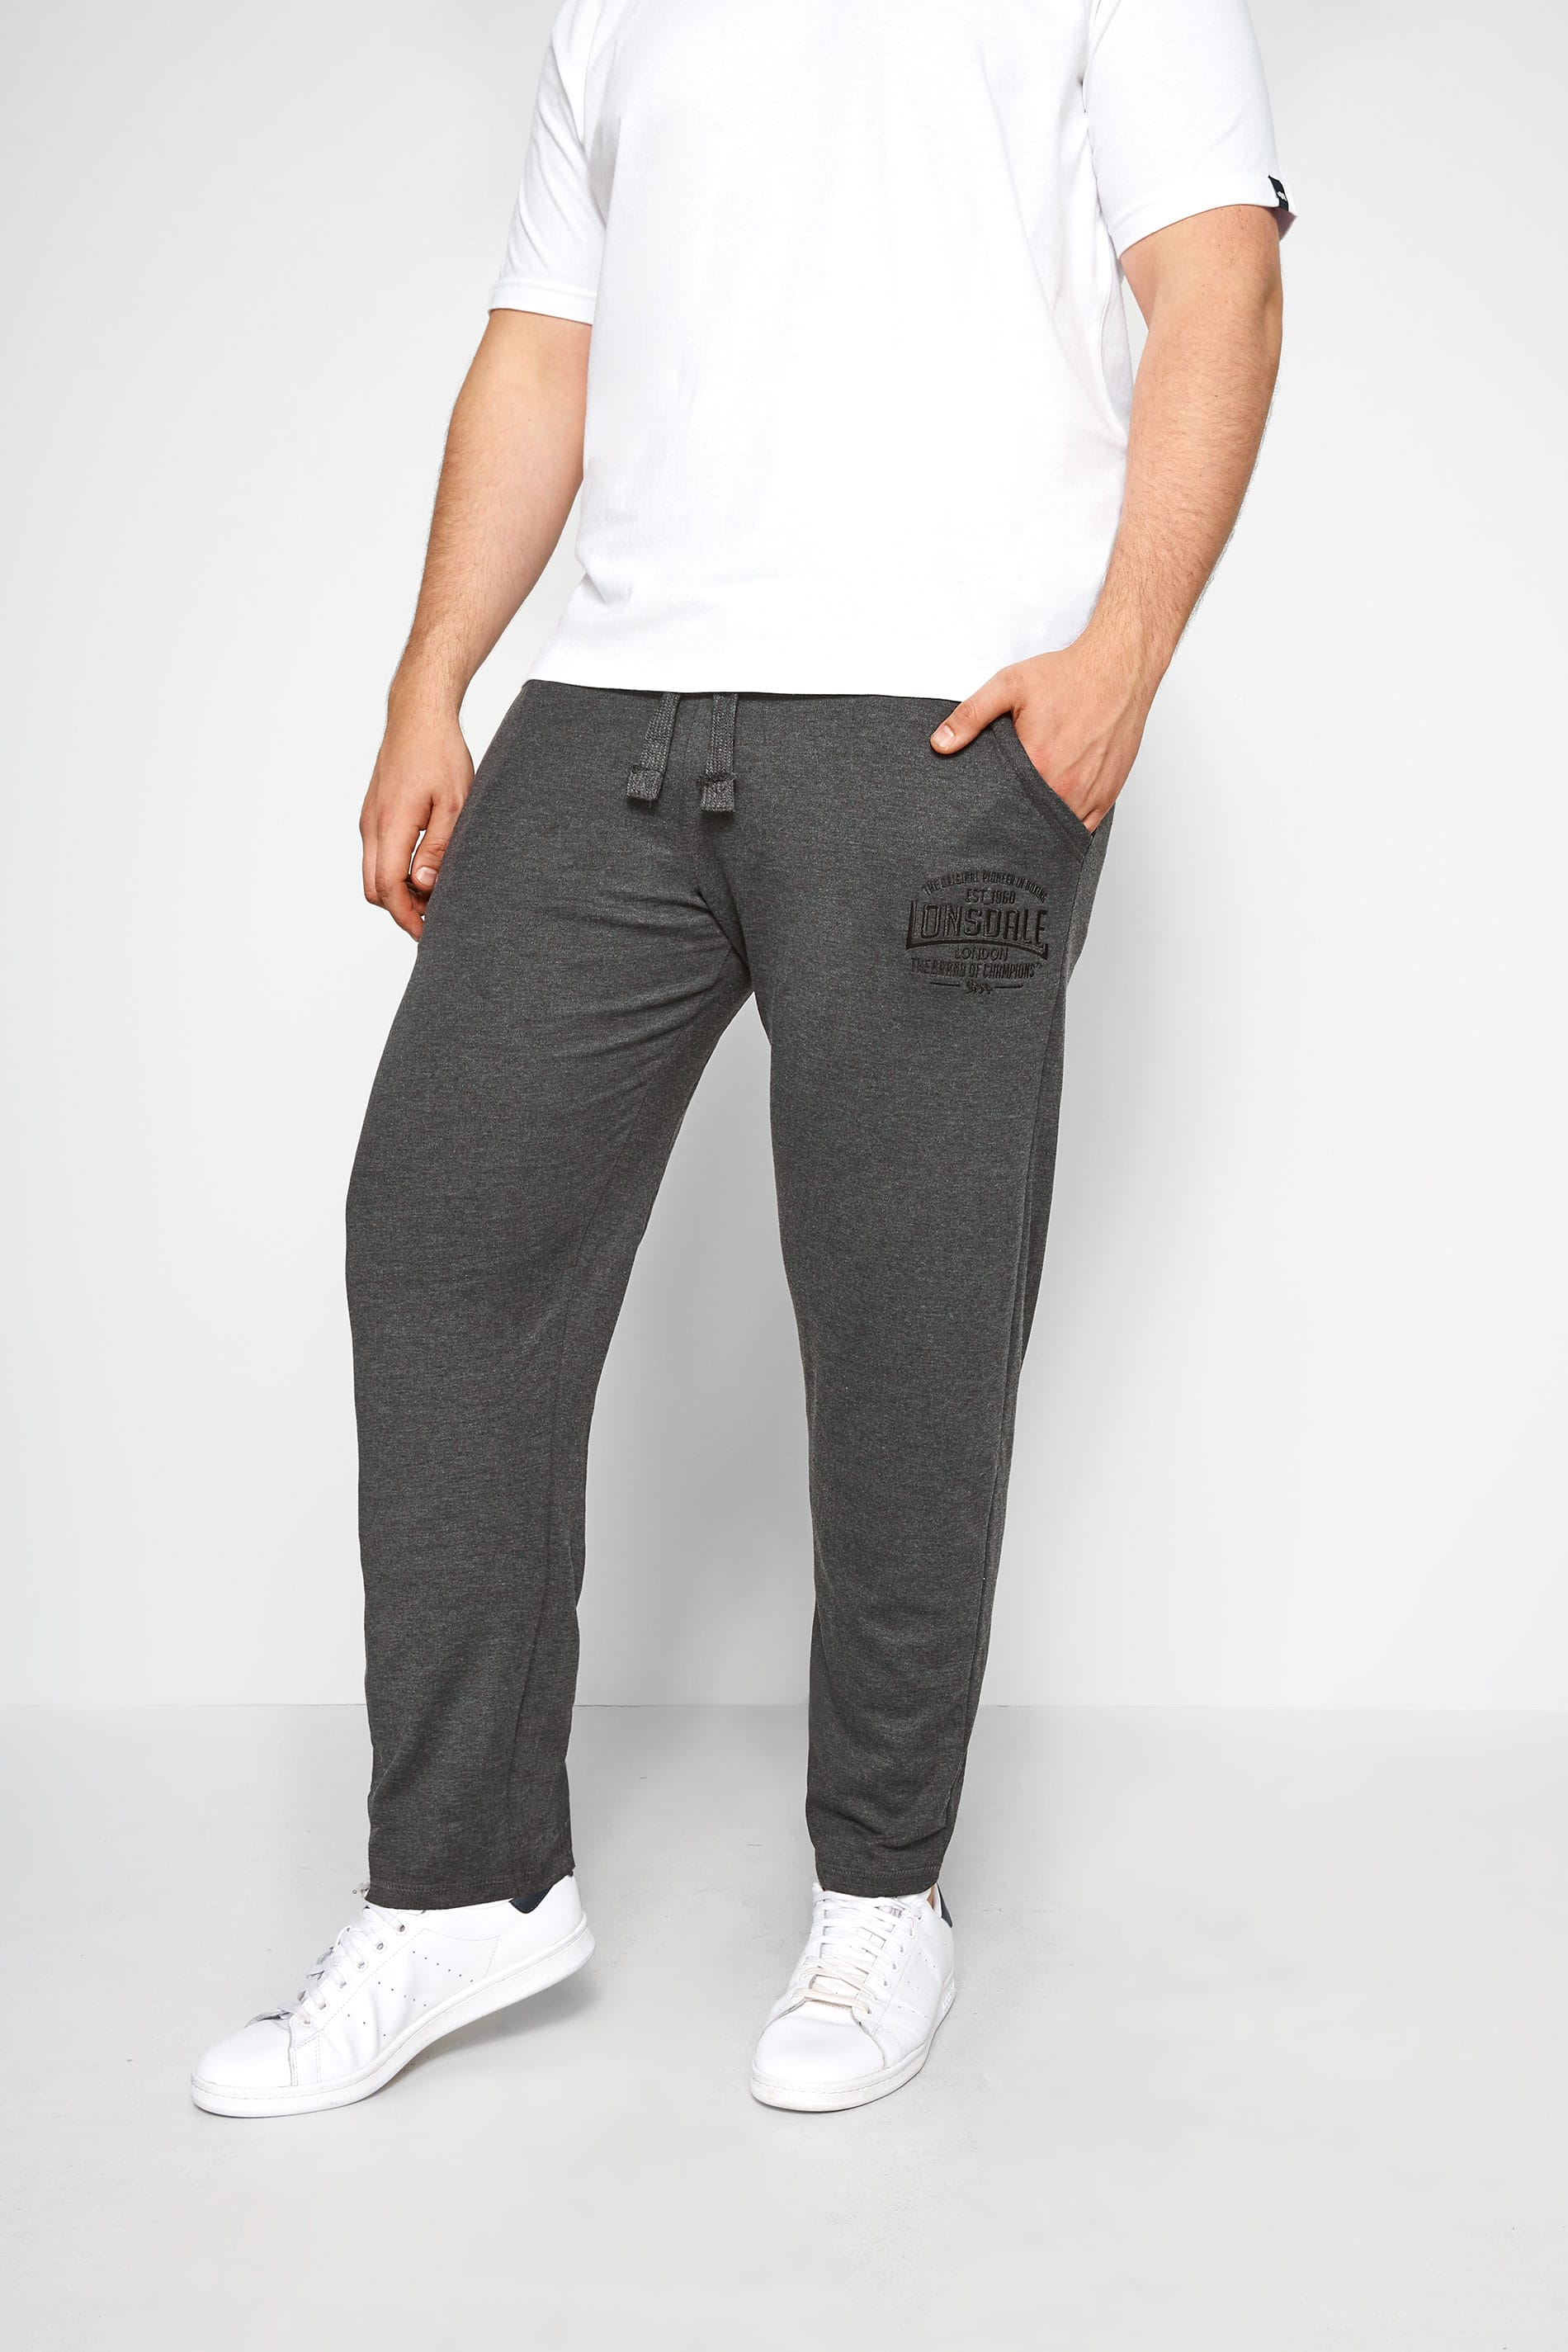 LONSDALE Charcoal Logo Joggers